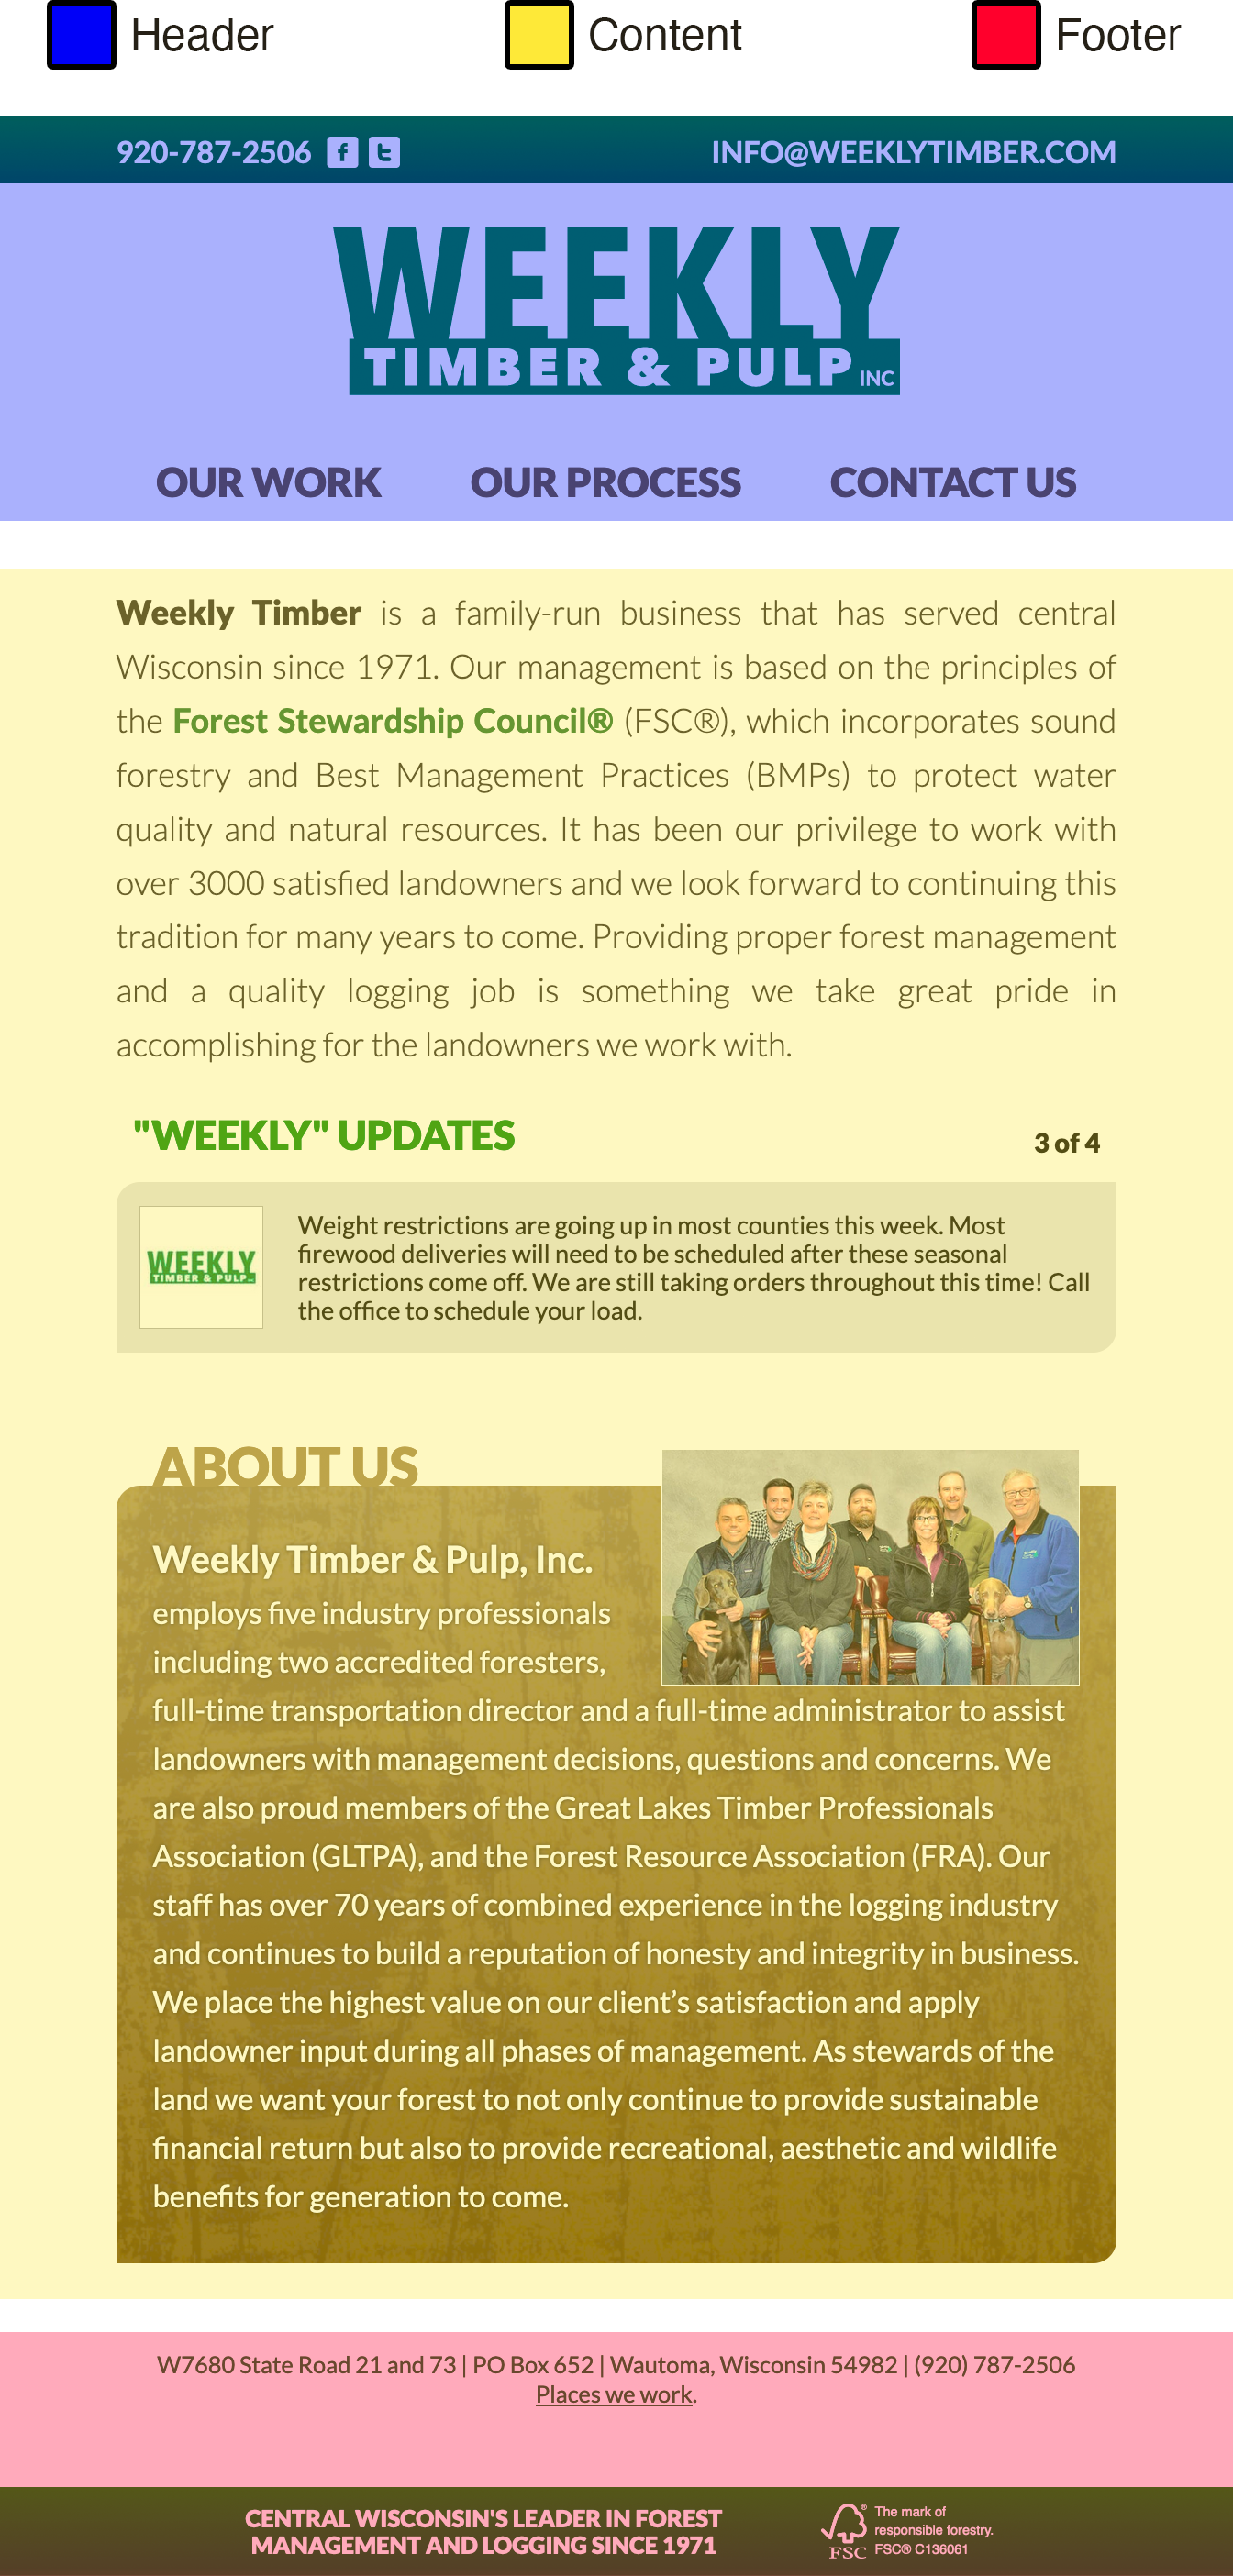 A screenshot of the Weekly Timber website color coded to delineate each partial that makes up the page. The header is color coded as blue, the footer as red, and the main content in between as yellow.